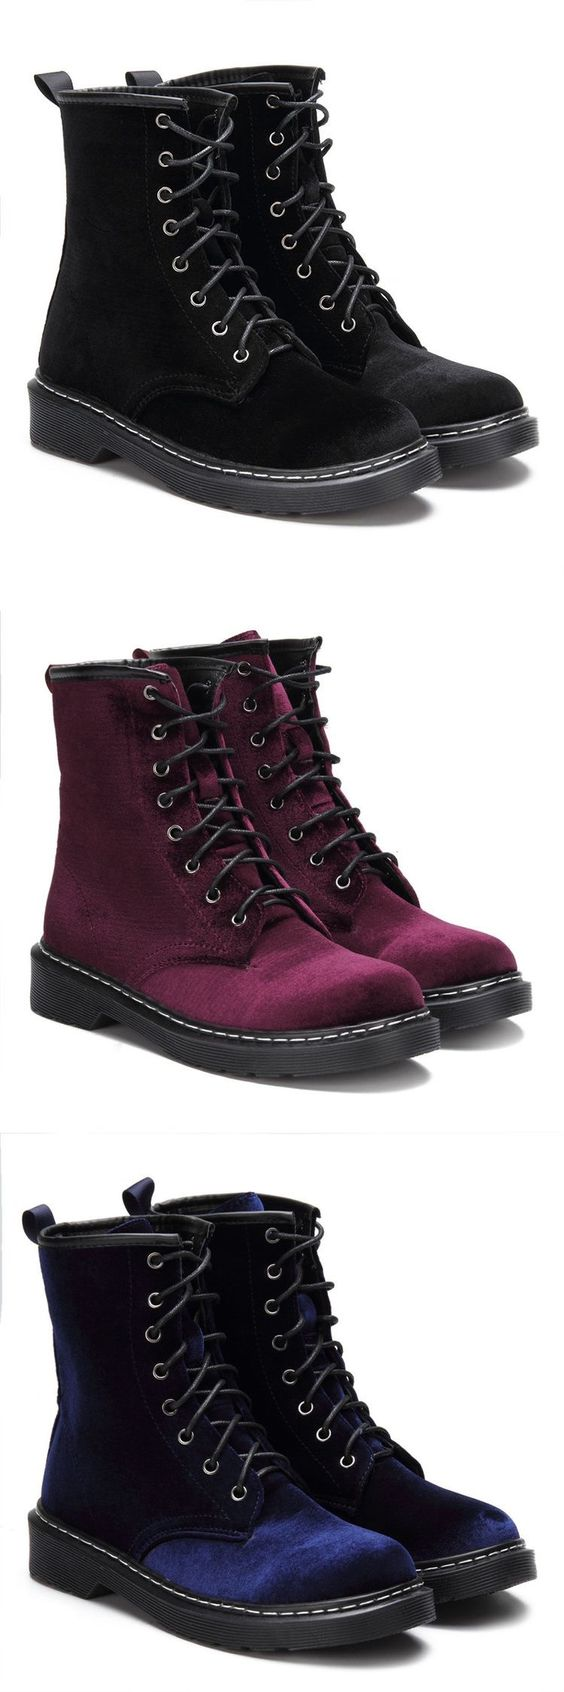 Boots ideas colour